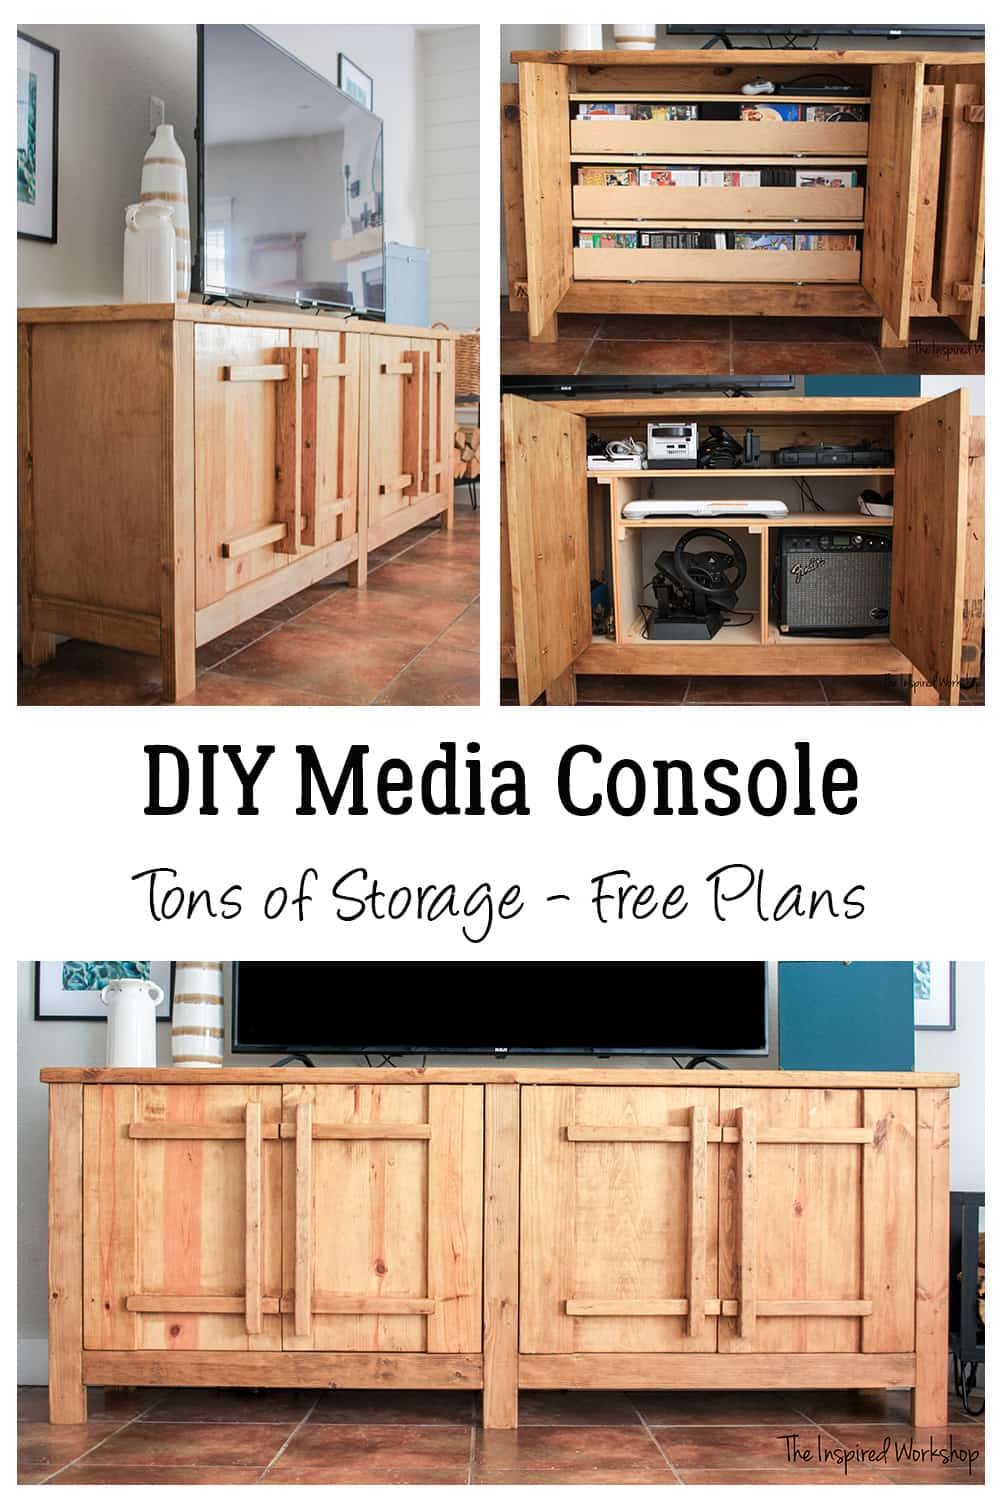 DIY TV Stand - Media Console